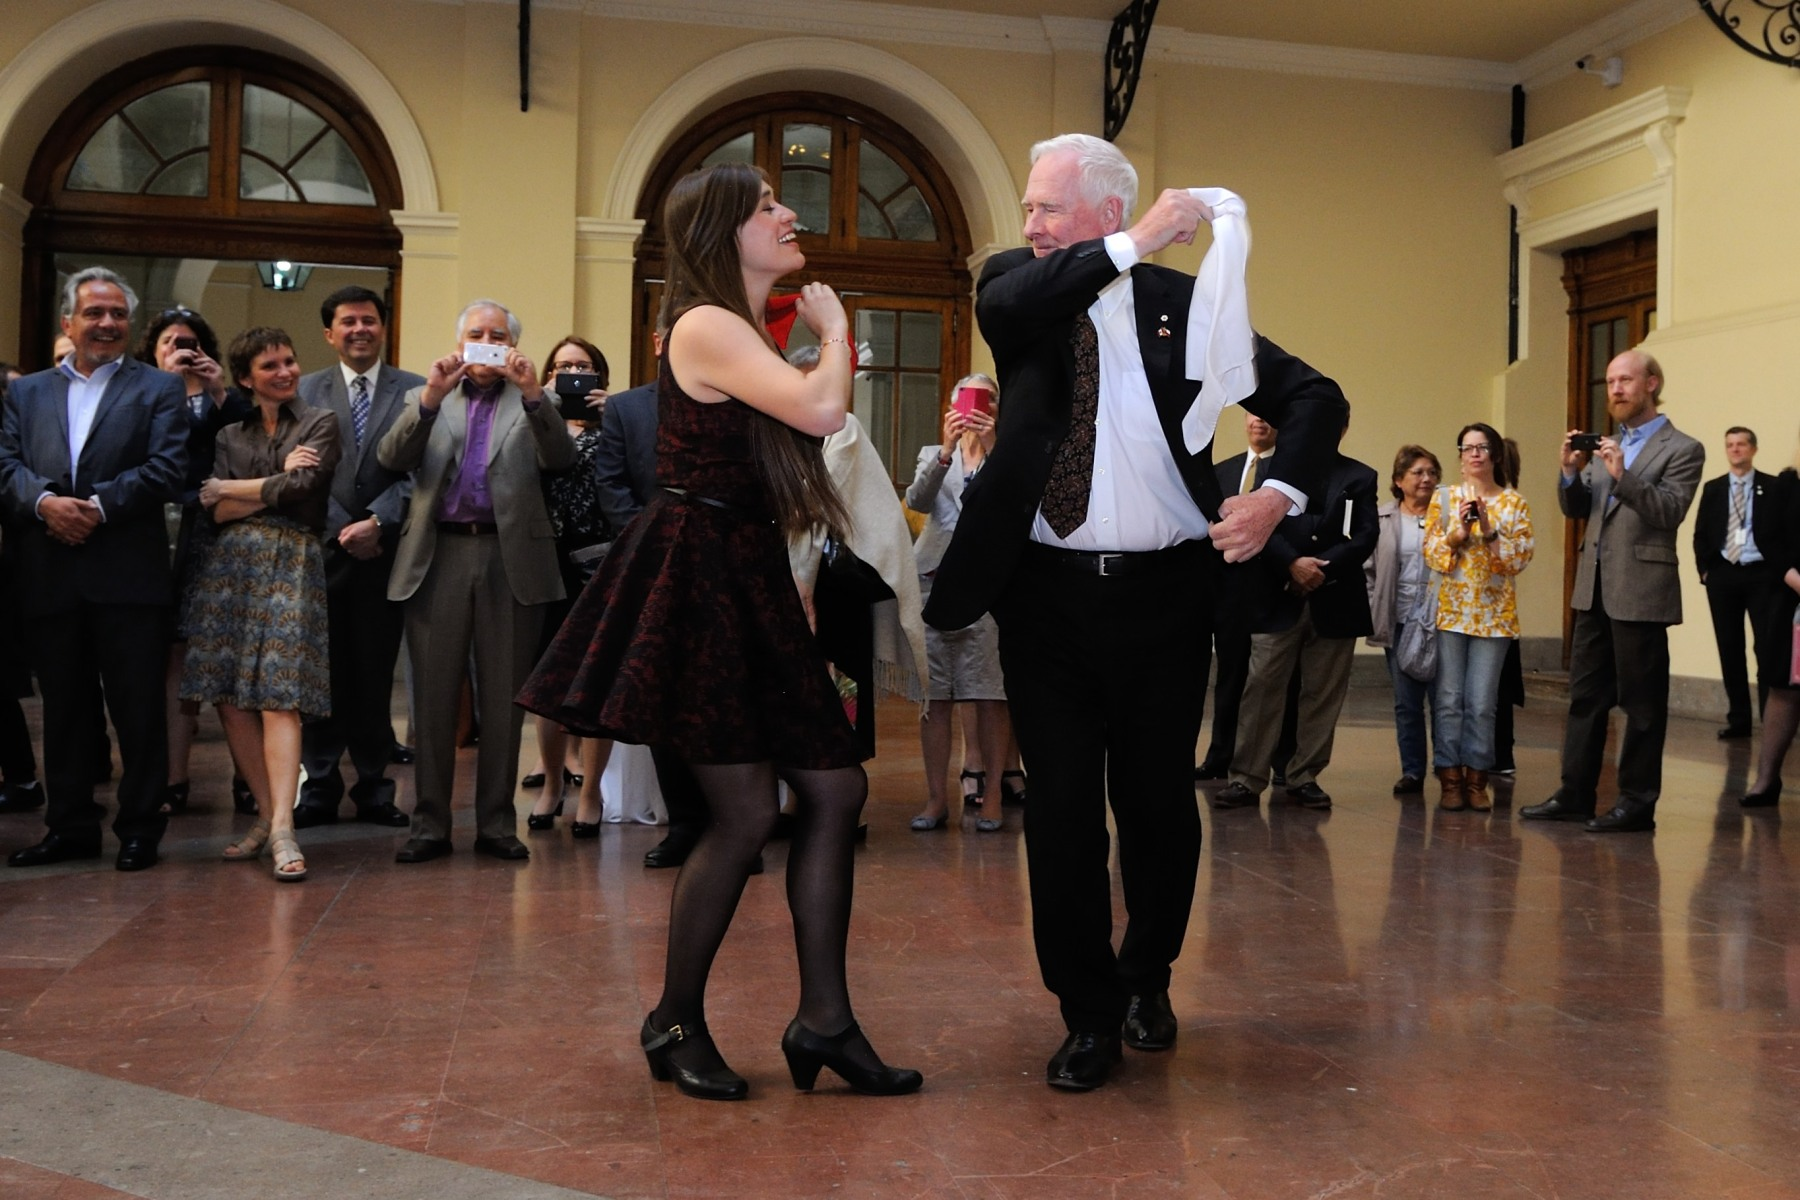 The Governor General also performed a few dance steps!